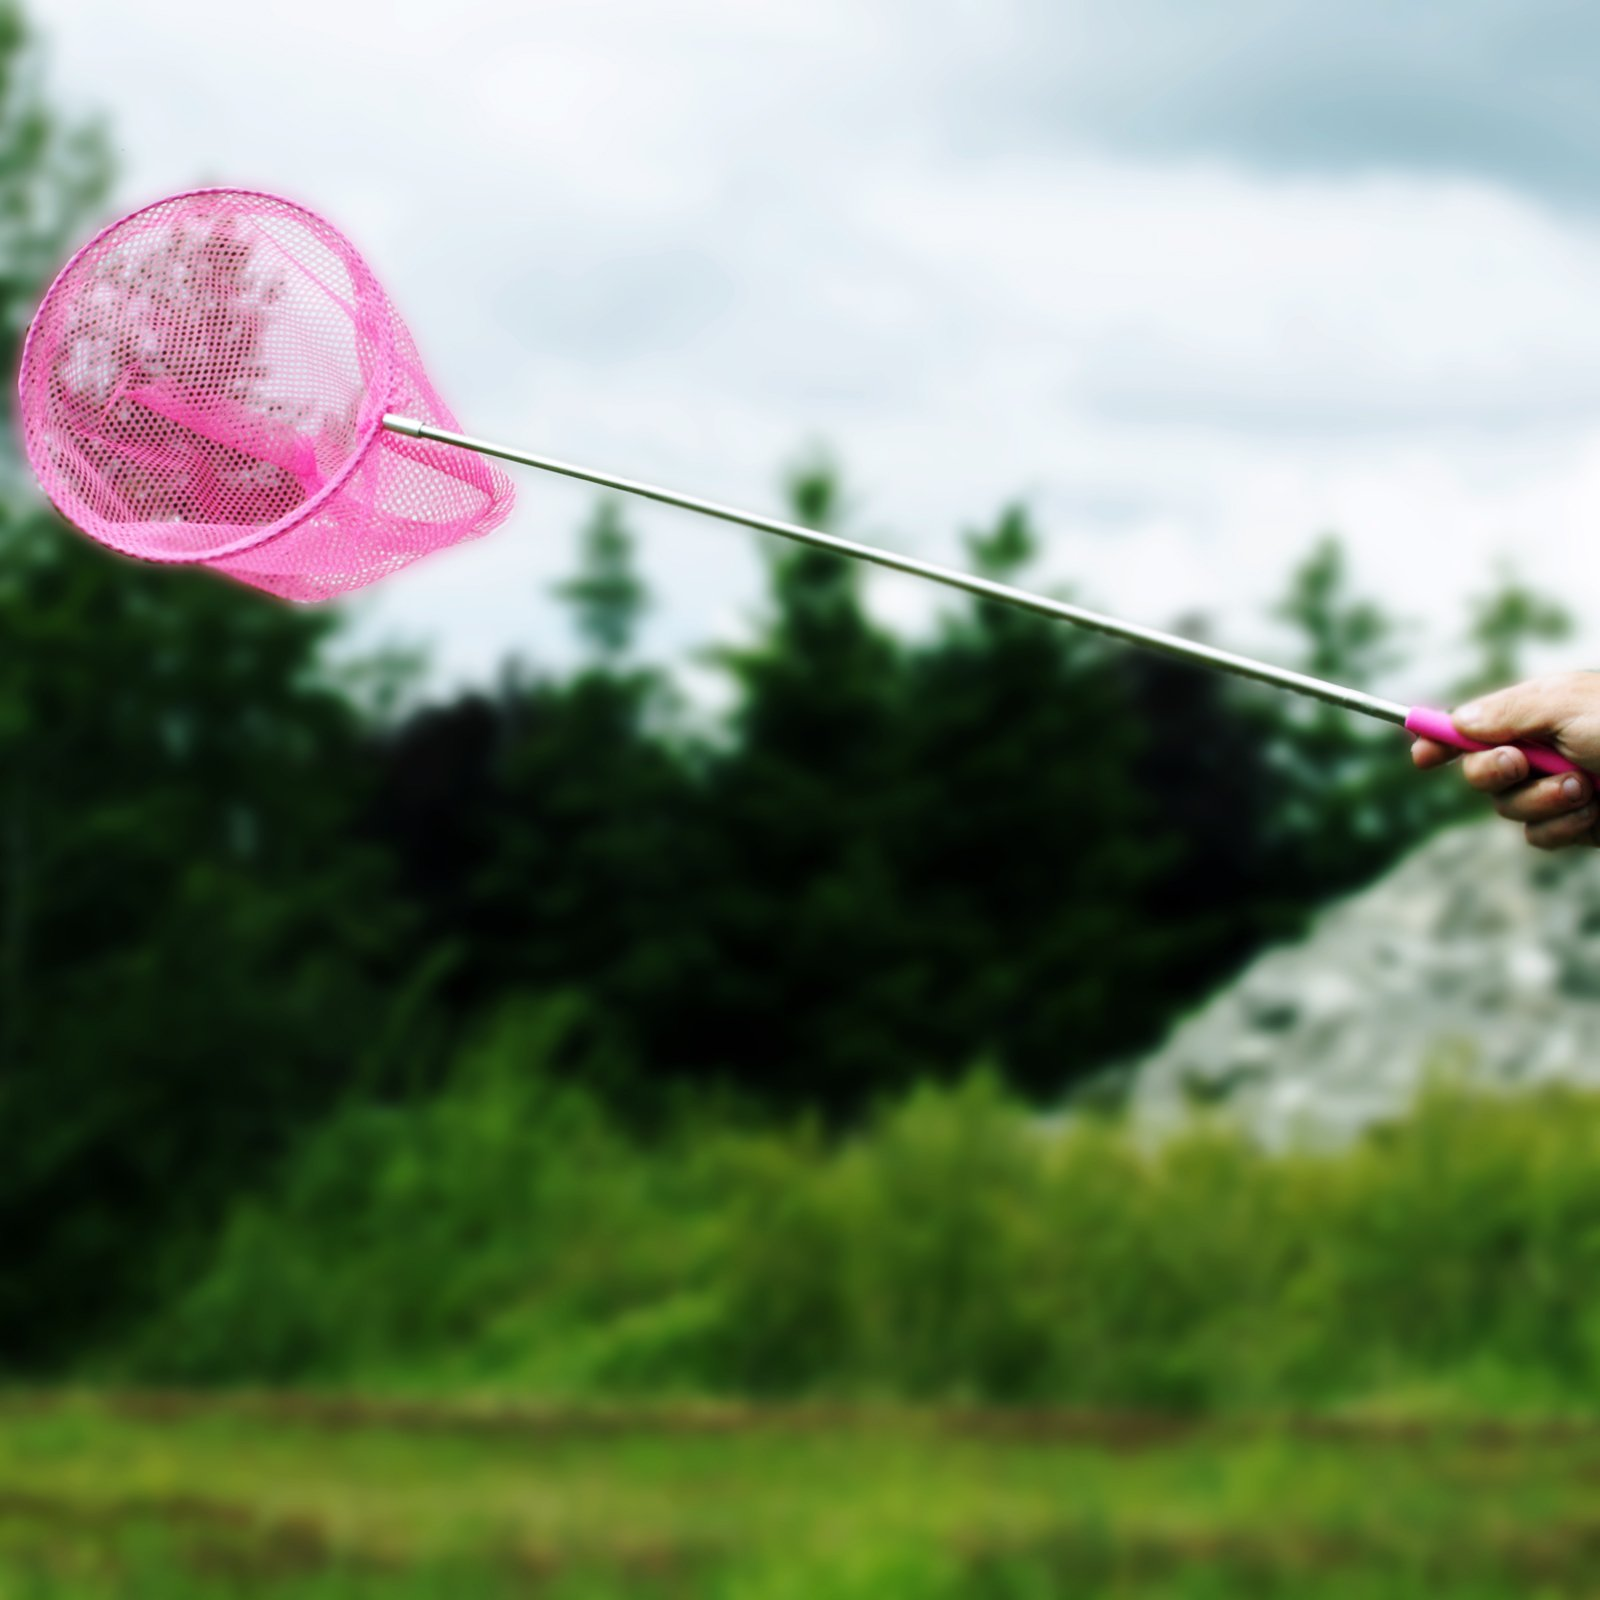 KidPlay Products Telescopic Mesh Butterfly Net Kids Outdoor Toy Pink